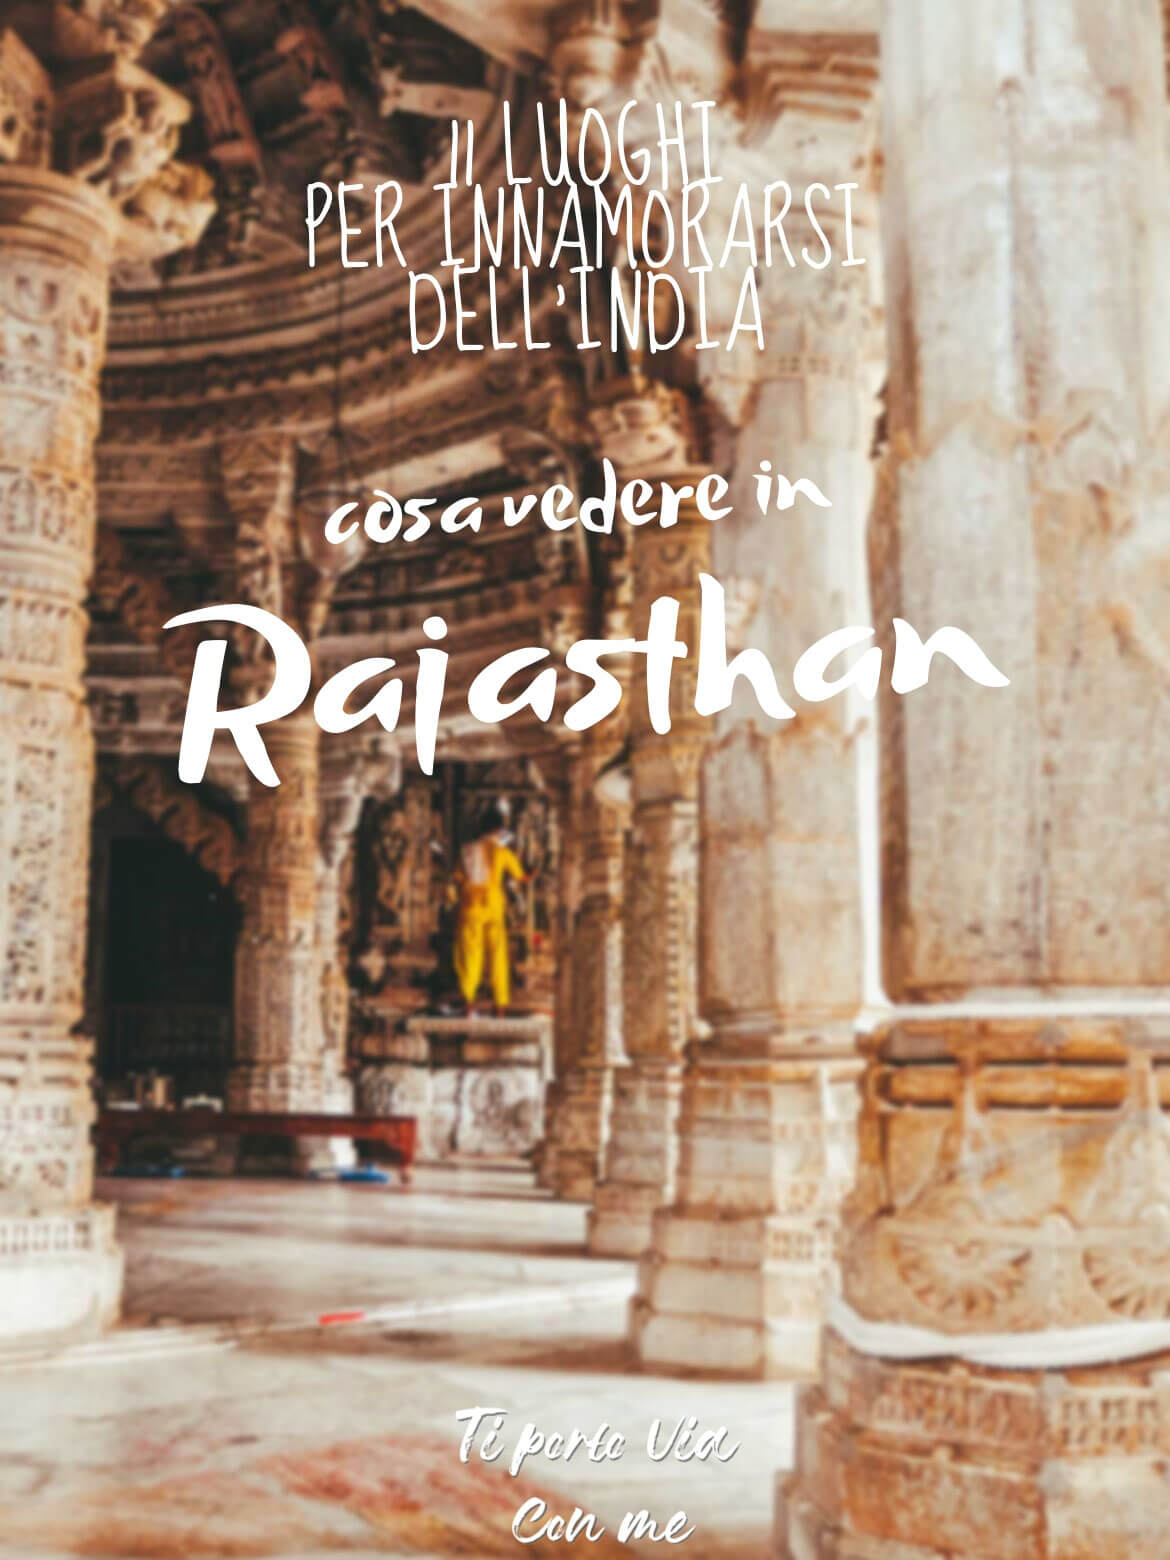 Rajasthan cosa vedere Pinterest